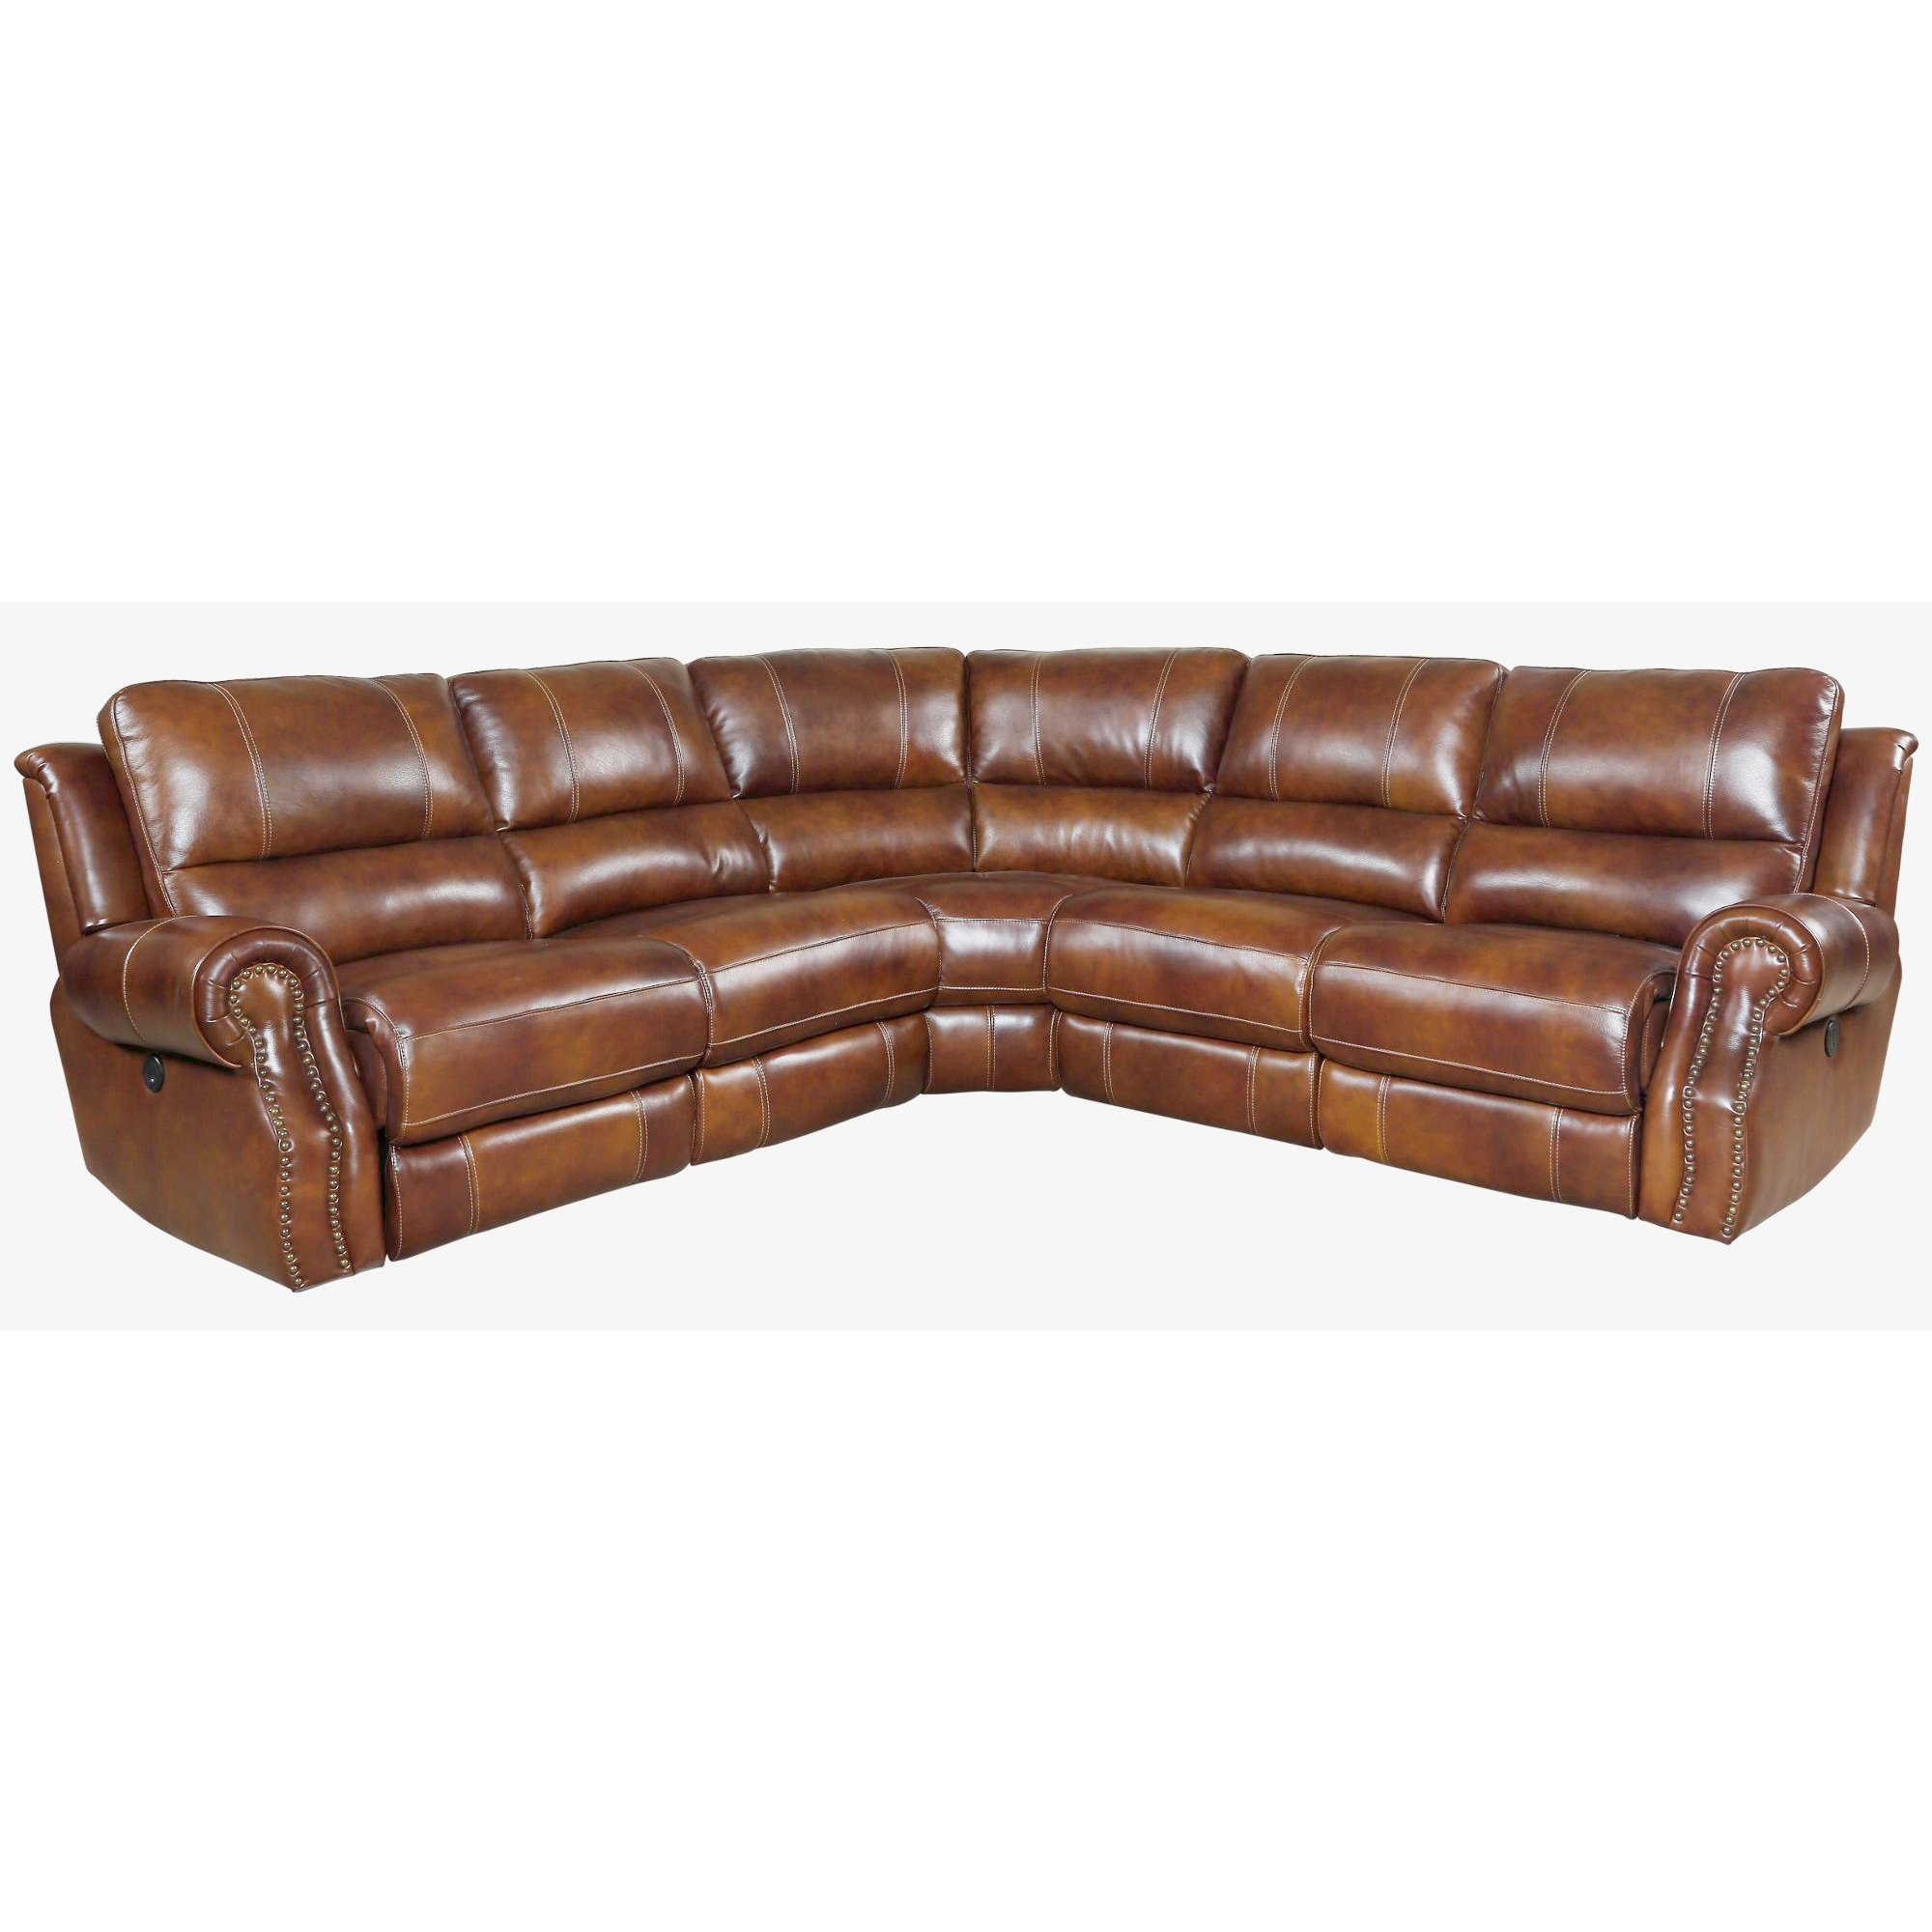 Chestnut Brown 5 Piece Power Reclining Sectional Sofa